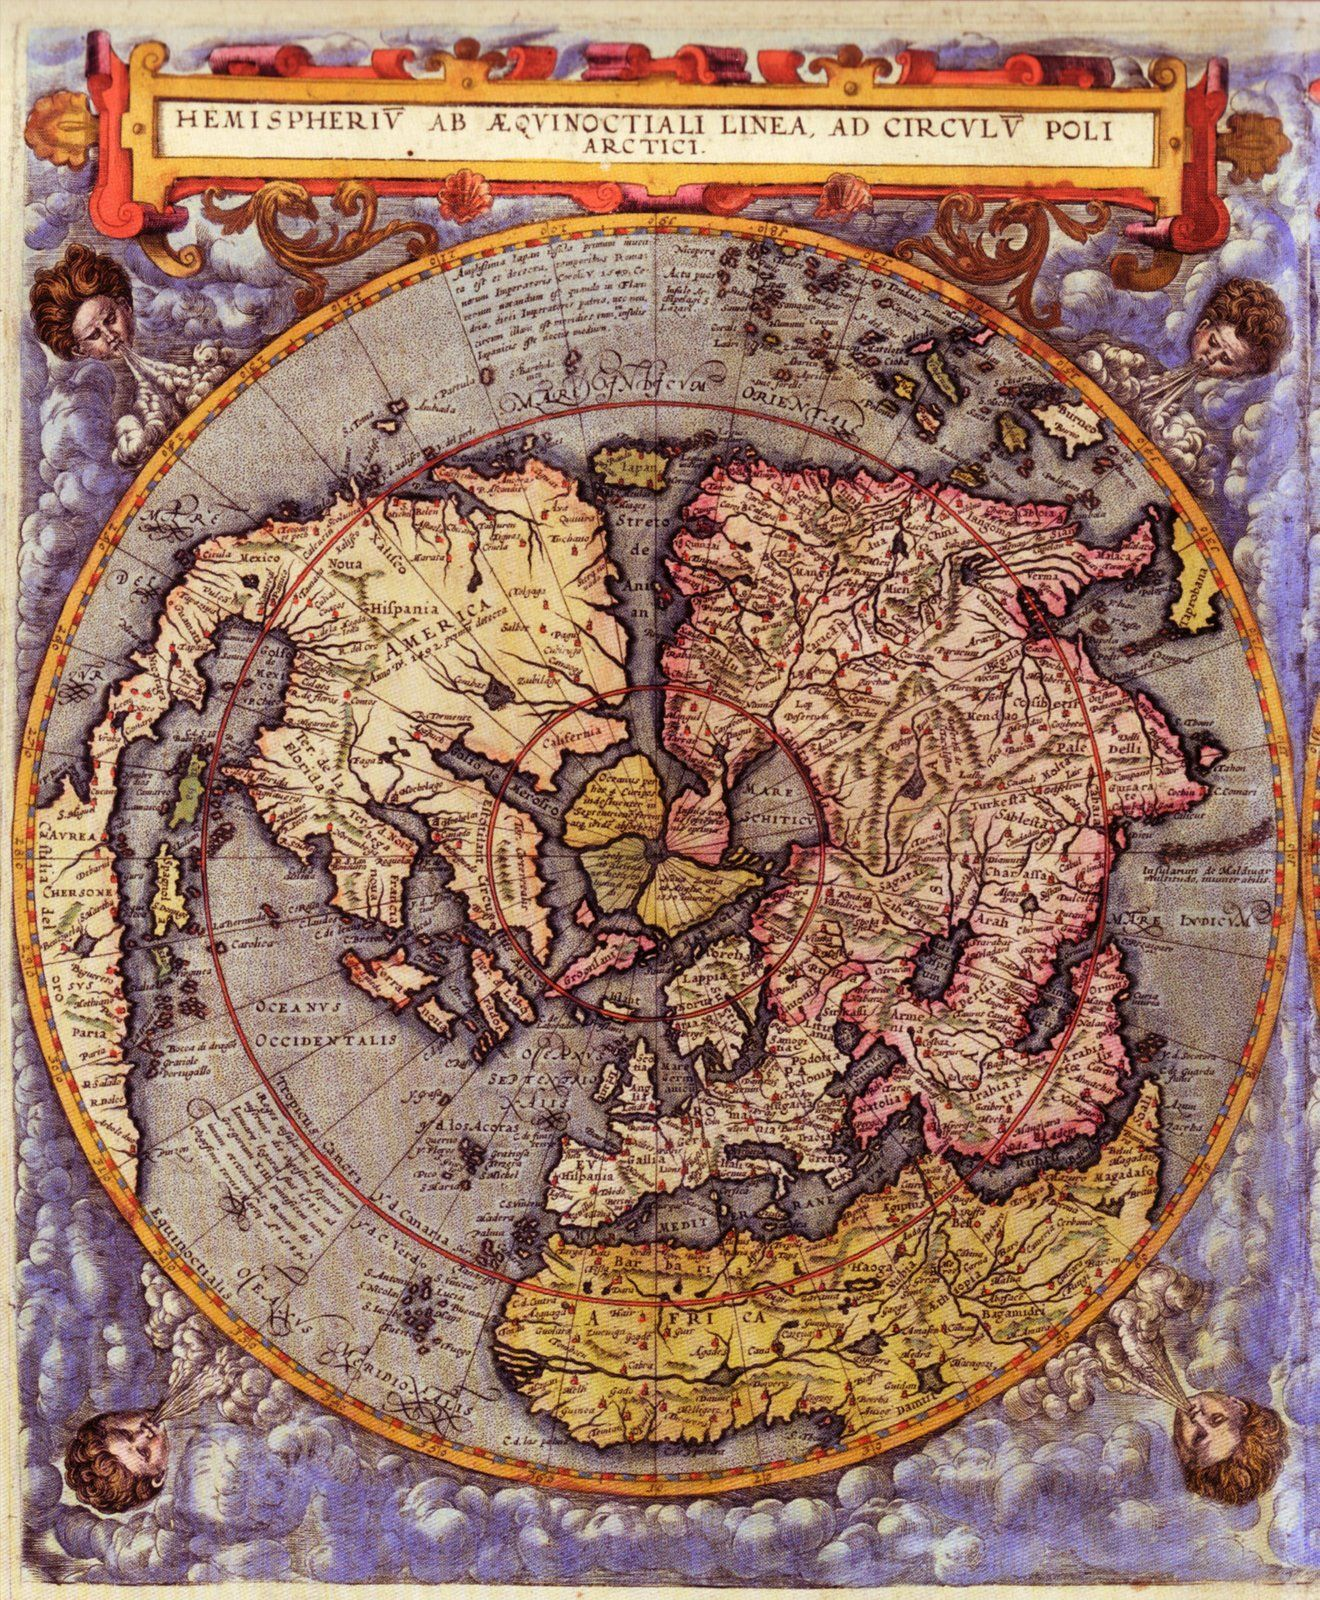 World Map 16th Century World maps of the Northern and Southern hemisphere published in 1593 by the Dutch cartographer and engraver Gerard de Jode.